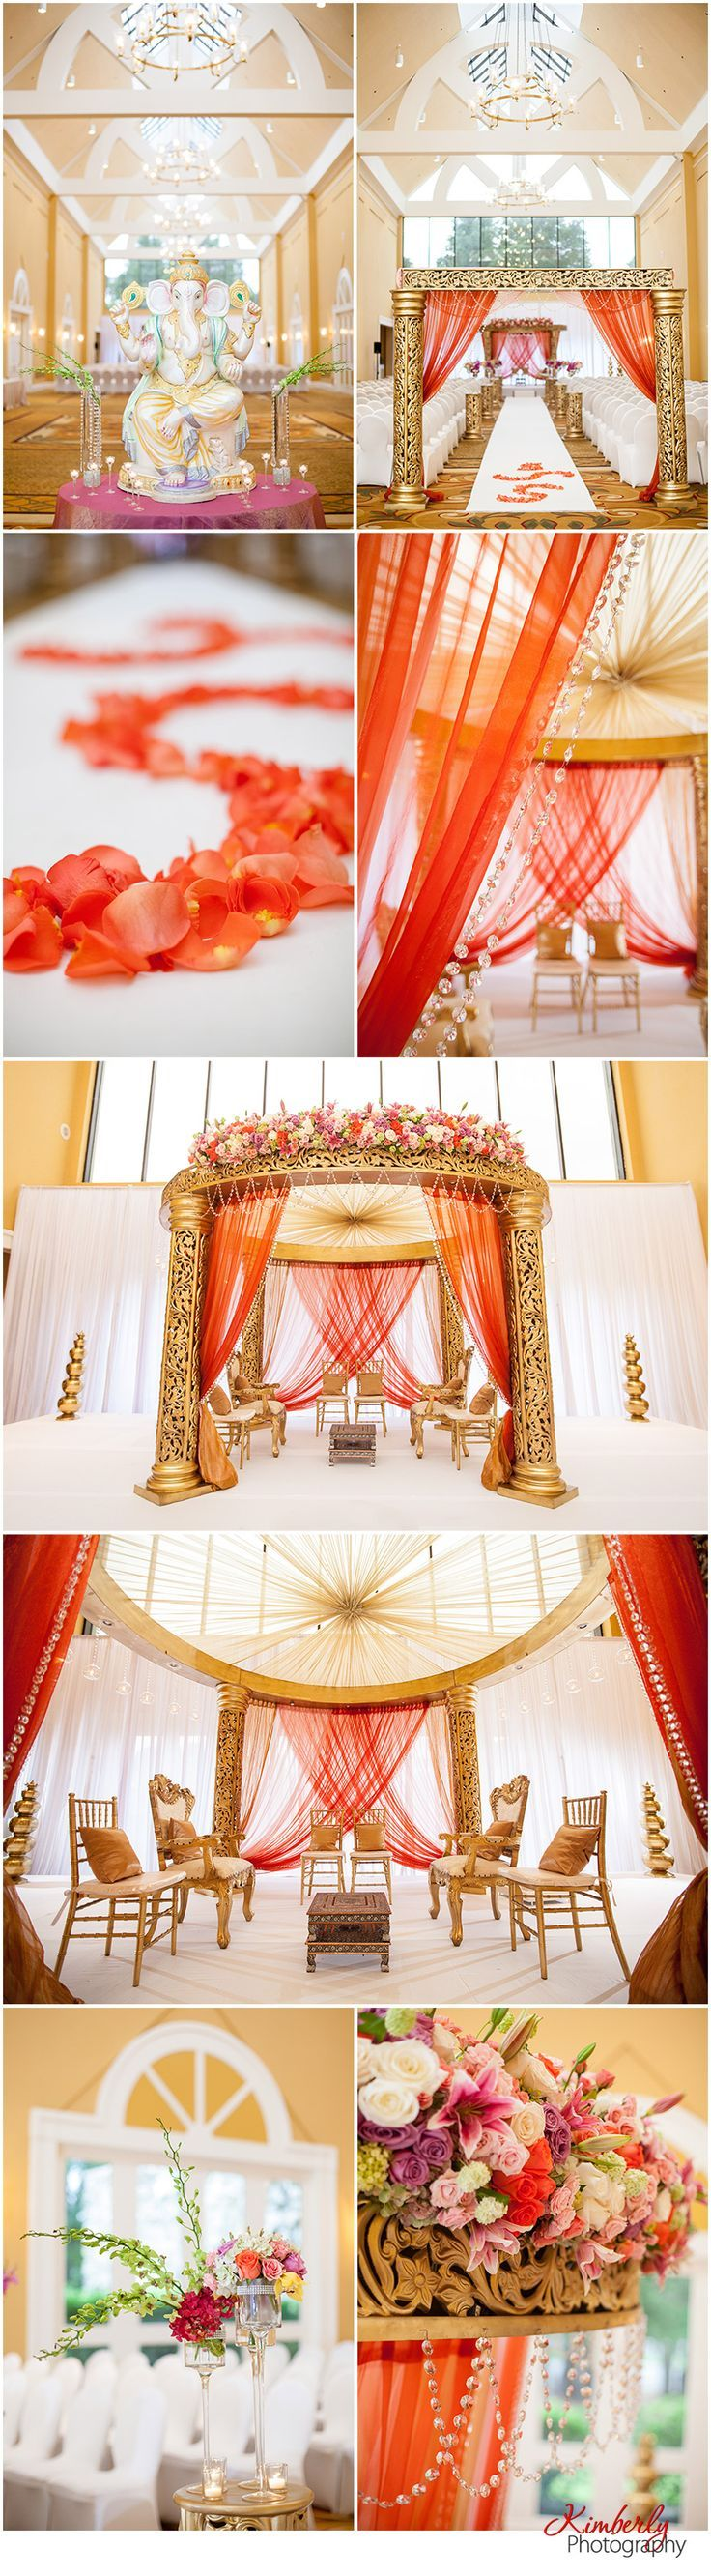 207 best venue decoration wedding parties etc images on get inspired with this romantic mandap decor florida indian wedding decor by suhaag gardens and captured by kimberly photography junglespirit Images